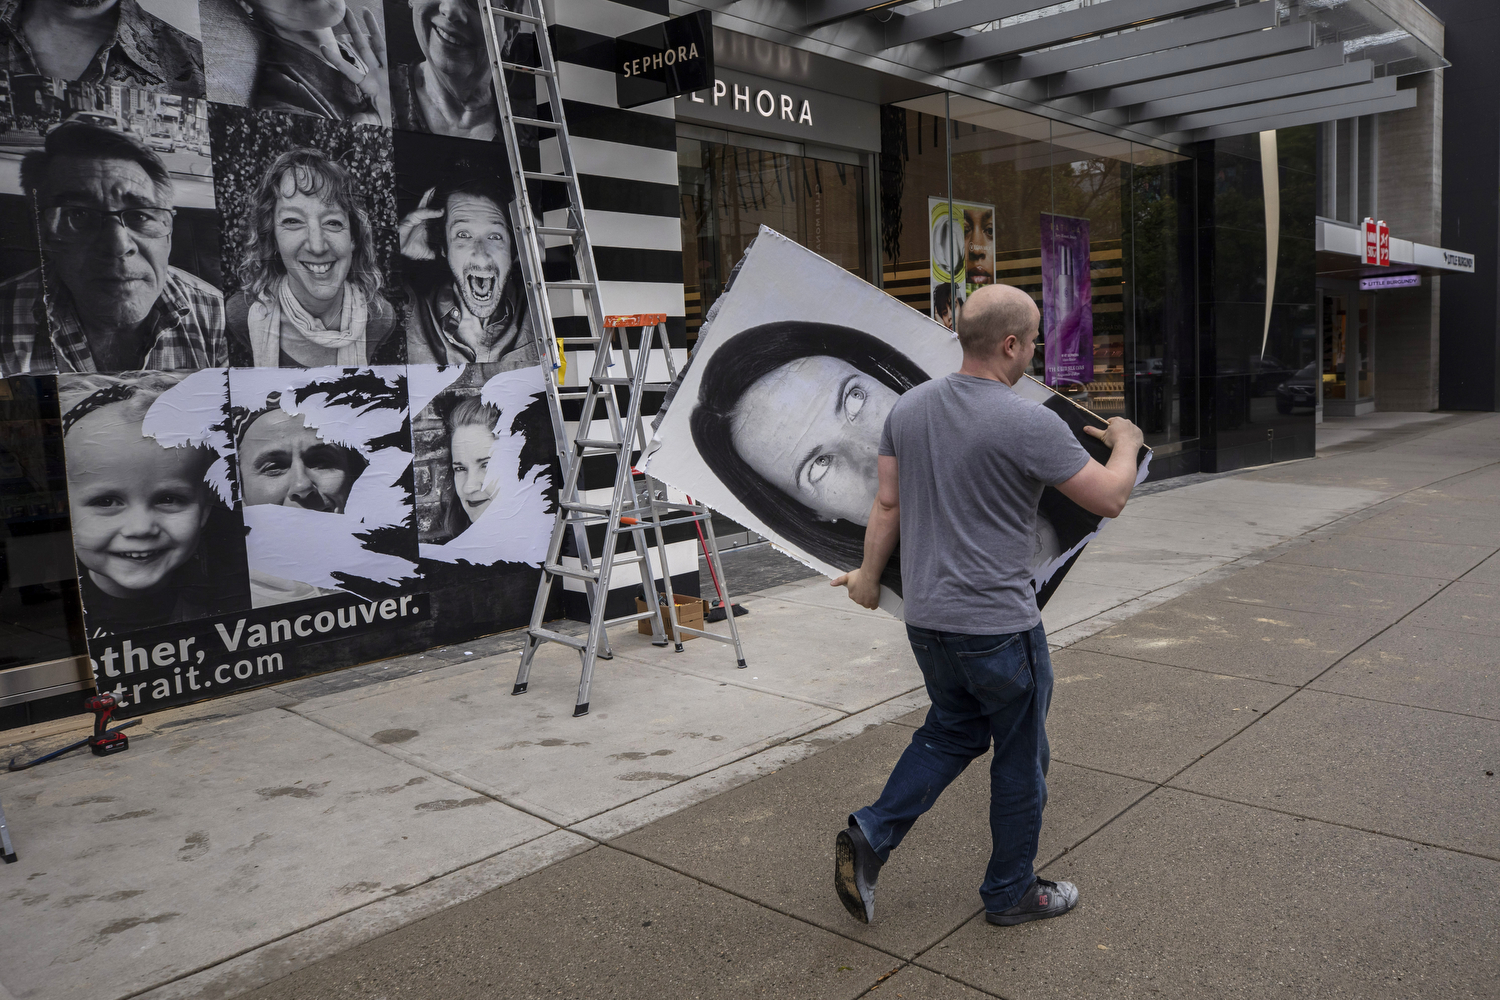 Workers take down plywood boards painted with murals covering up entrances of stores on Vancouver's Robson Street on May 11, 2020. B.C. entered Phase 2 of its pandemic restart program on May 19, allowing stores to reopen. (Ben Nelms/CBC Vancouver)